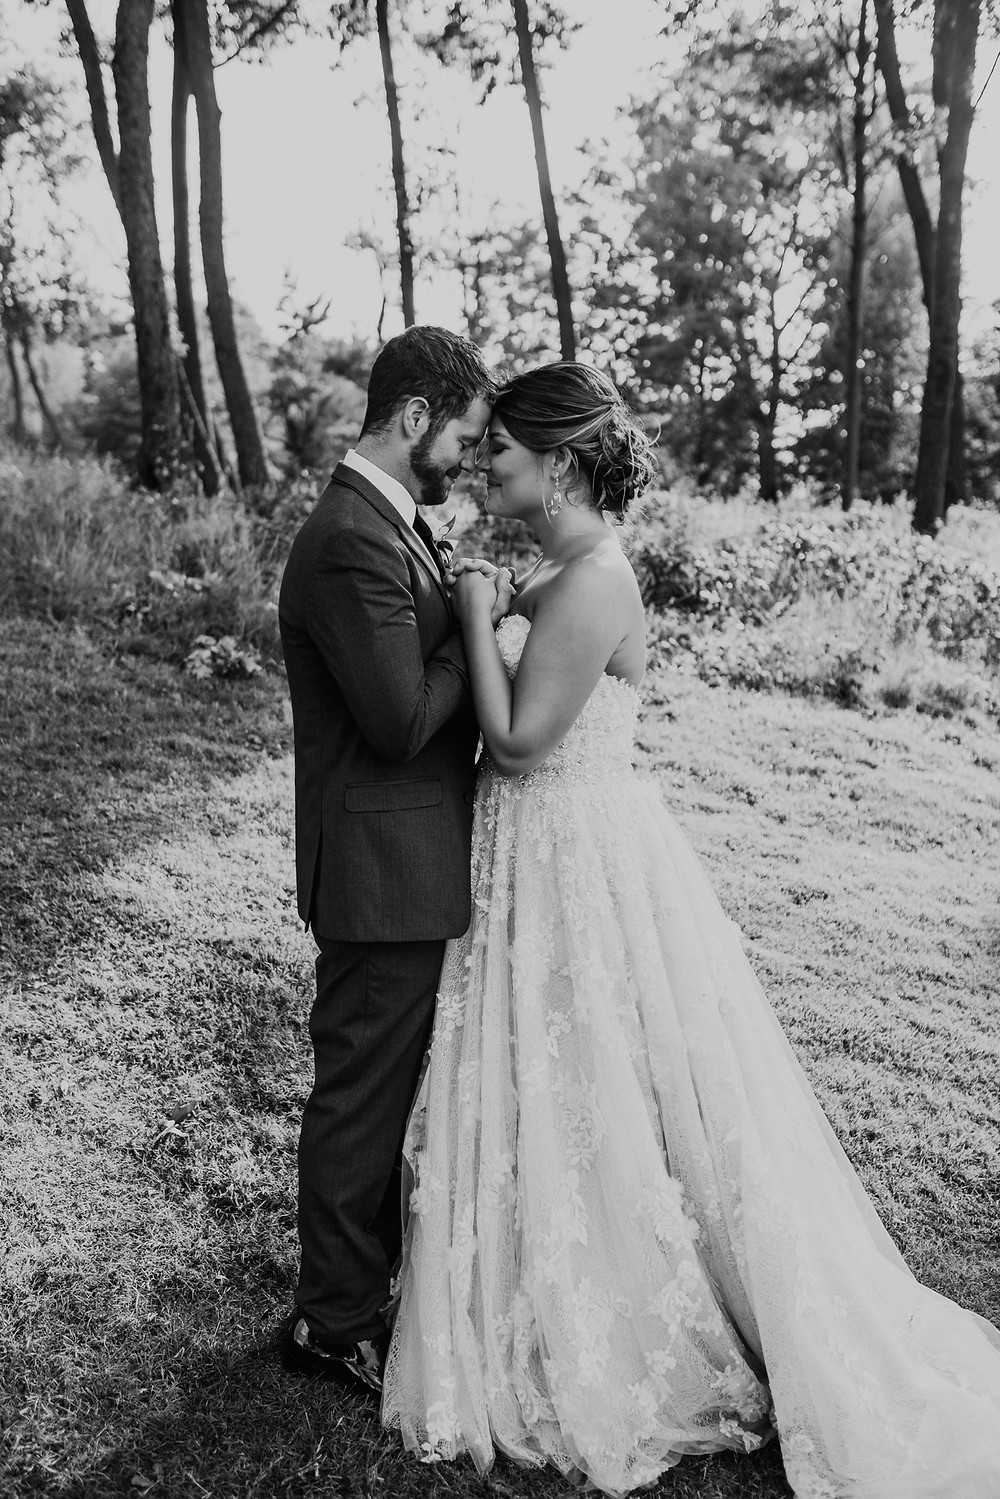 Black and white wedding photos in Metro Detroit. Photographed by Nicole Leanne Photography.